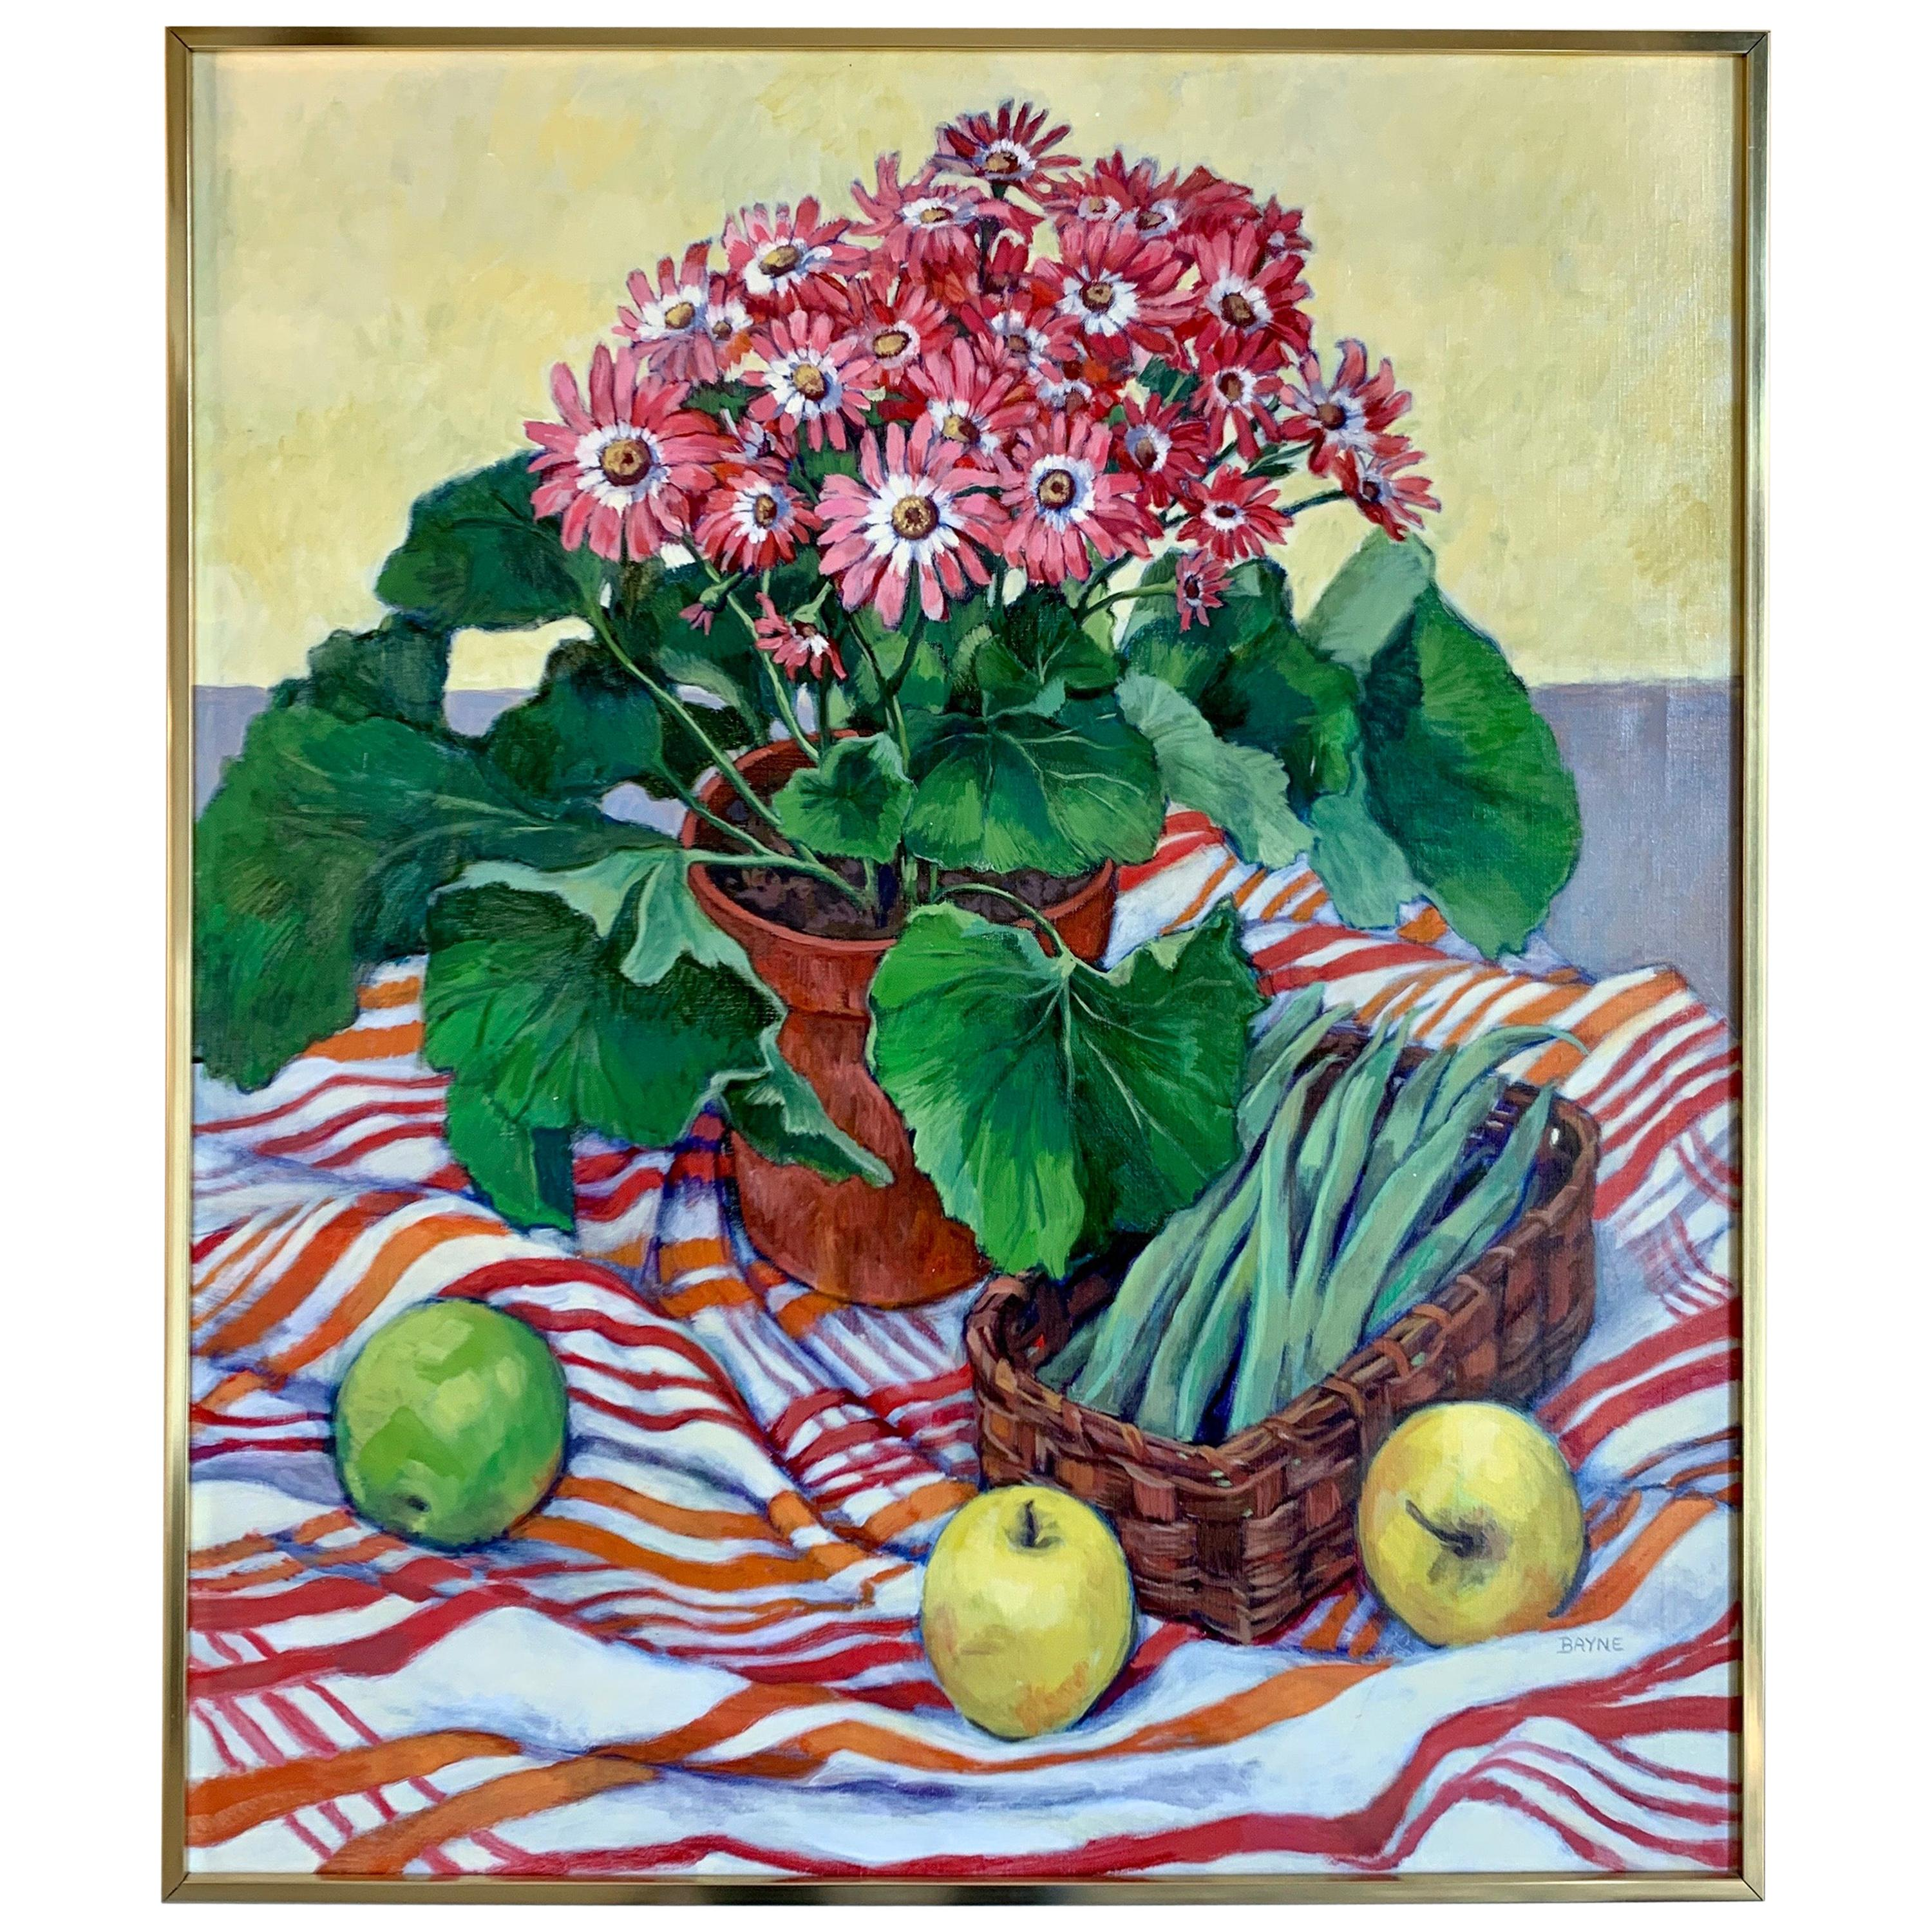 Original Signed Still Life of Fruits and Flowers Painting by Bayne